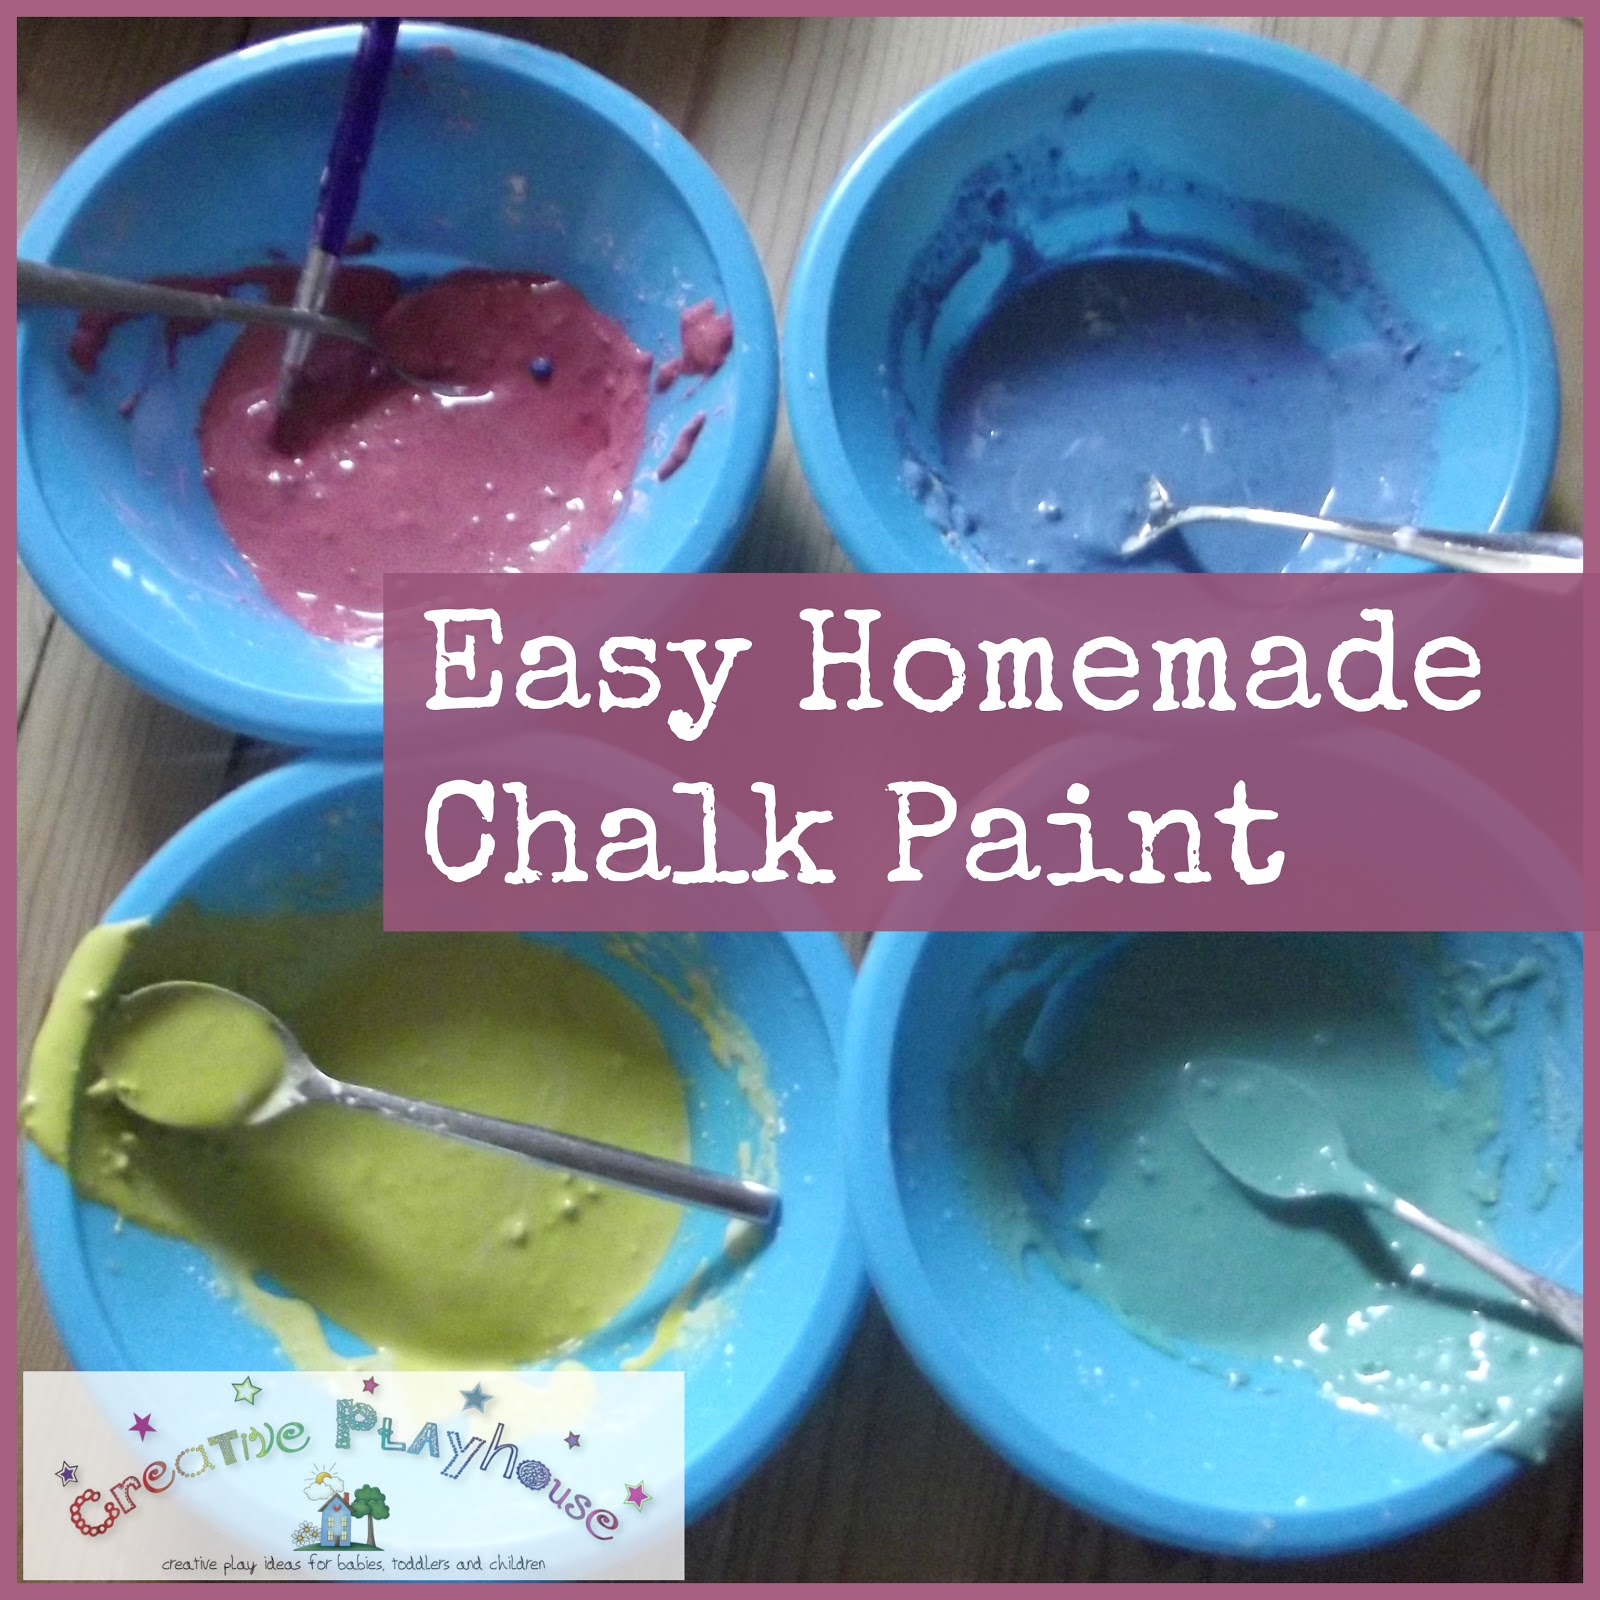 Creative playhouse easy homemade chalk paint for Walmart arts and crafts paint